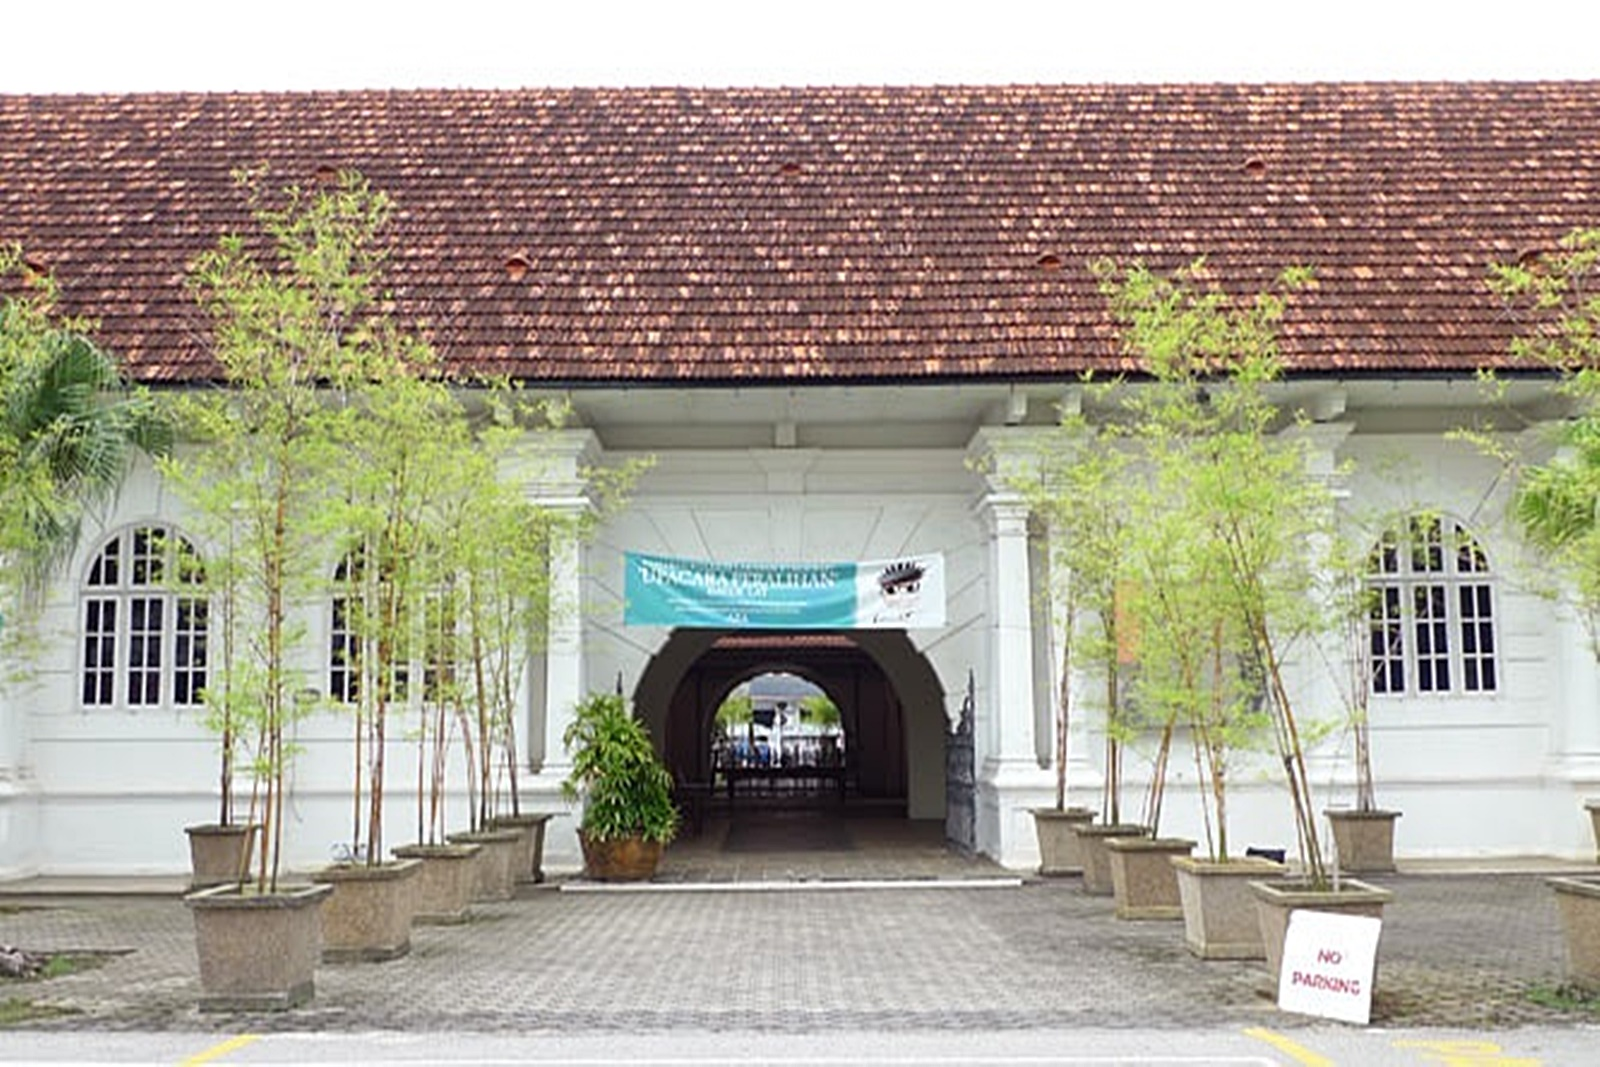 The Pahang Art Museum